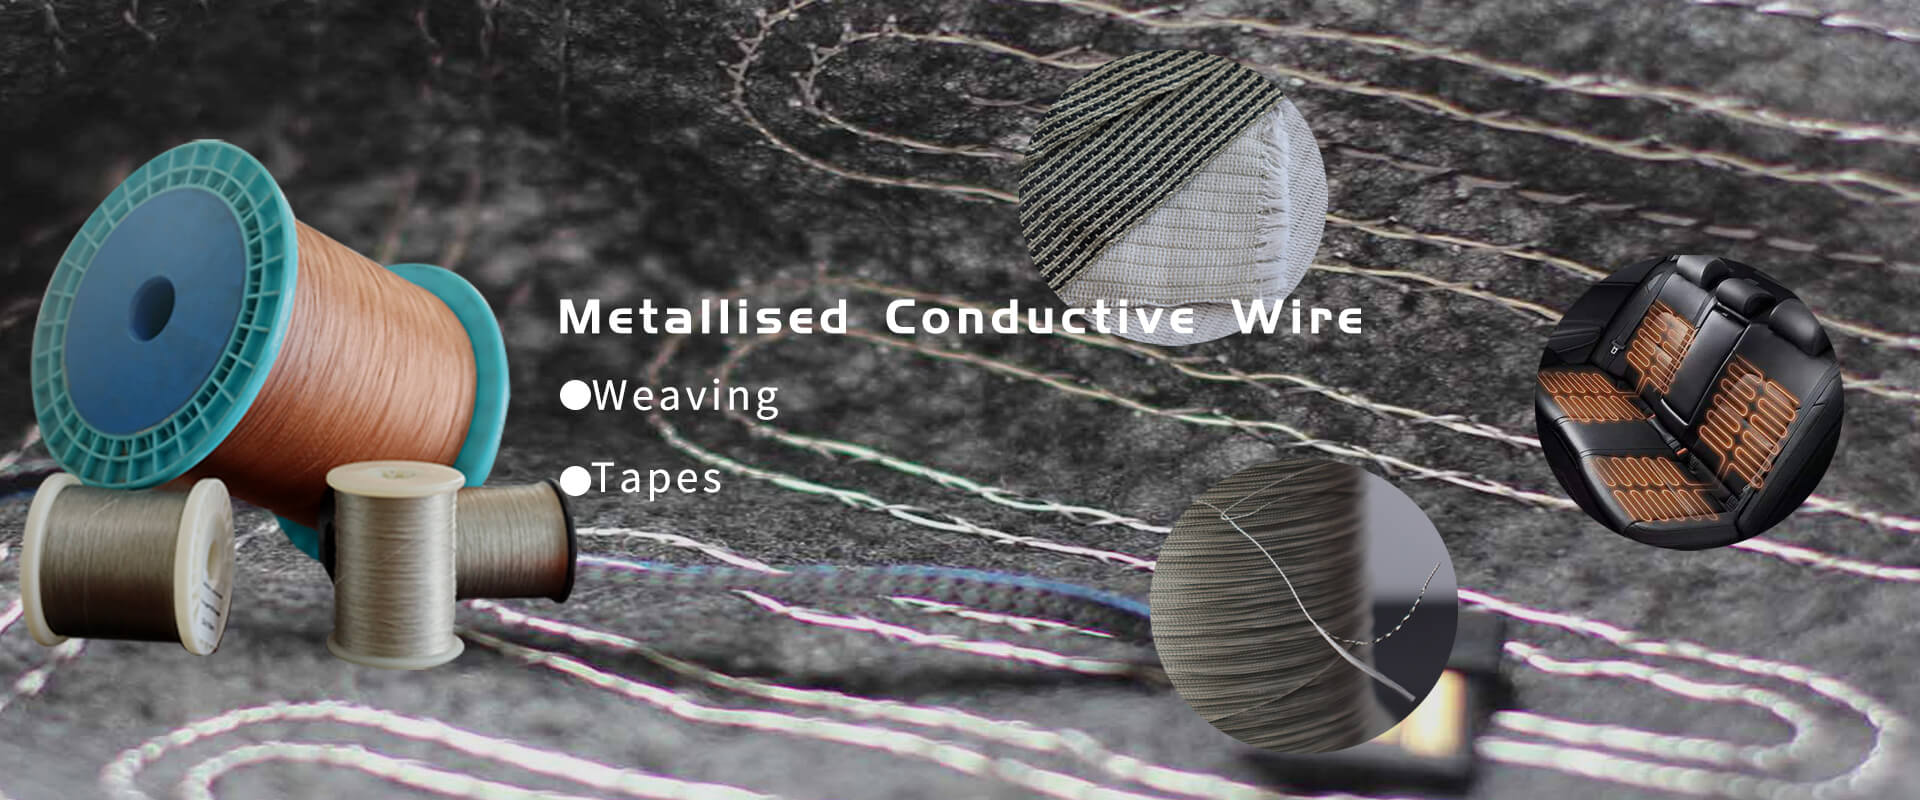 heating yarn<br>tensil wire<br>metallized yarn<br>metallized wire metallized yarn<br>metallized wire